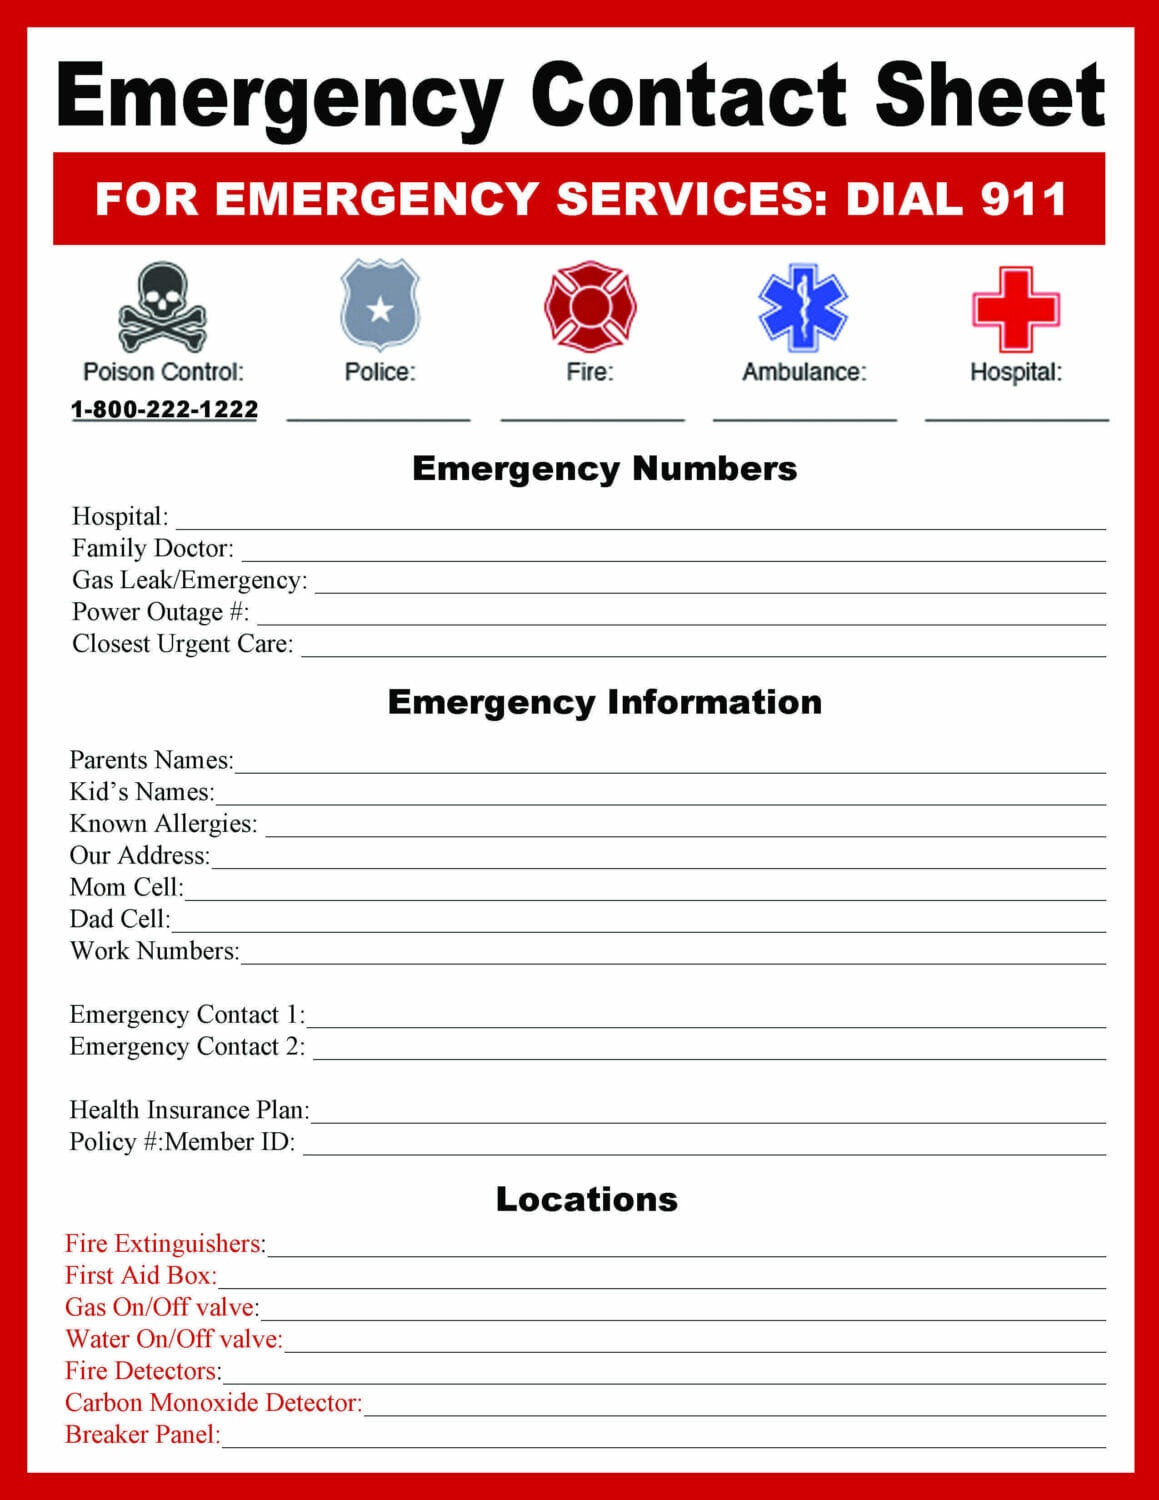 emergency phone numbers list gallery images and information